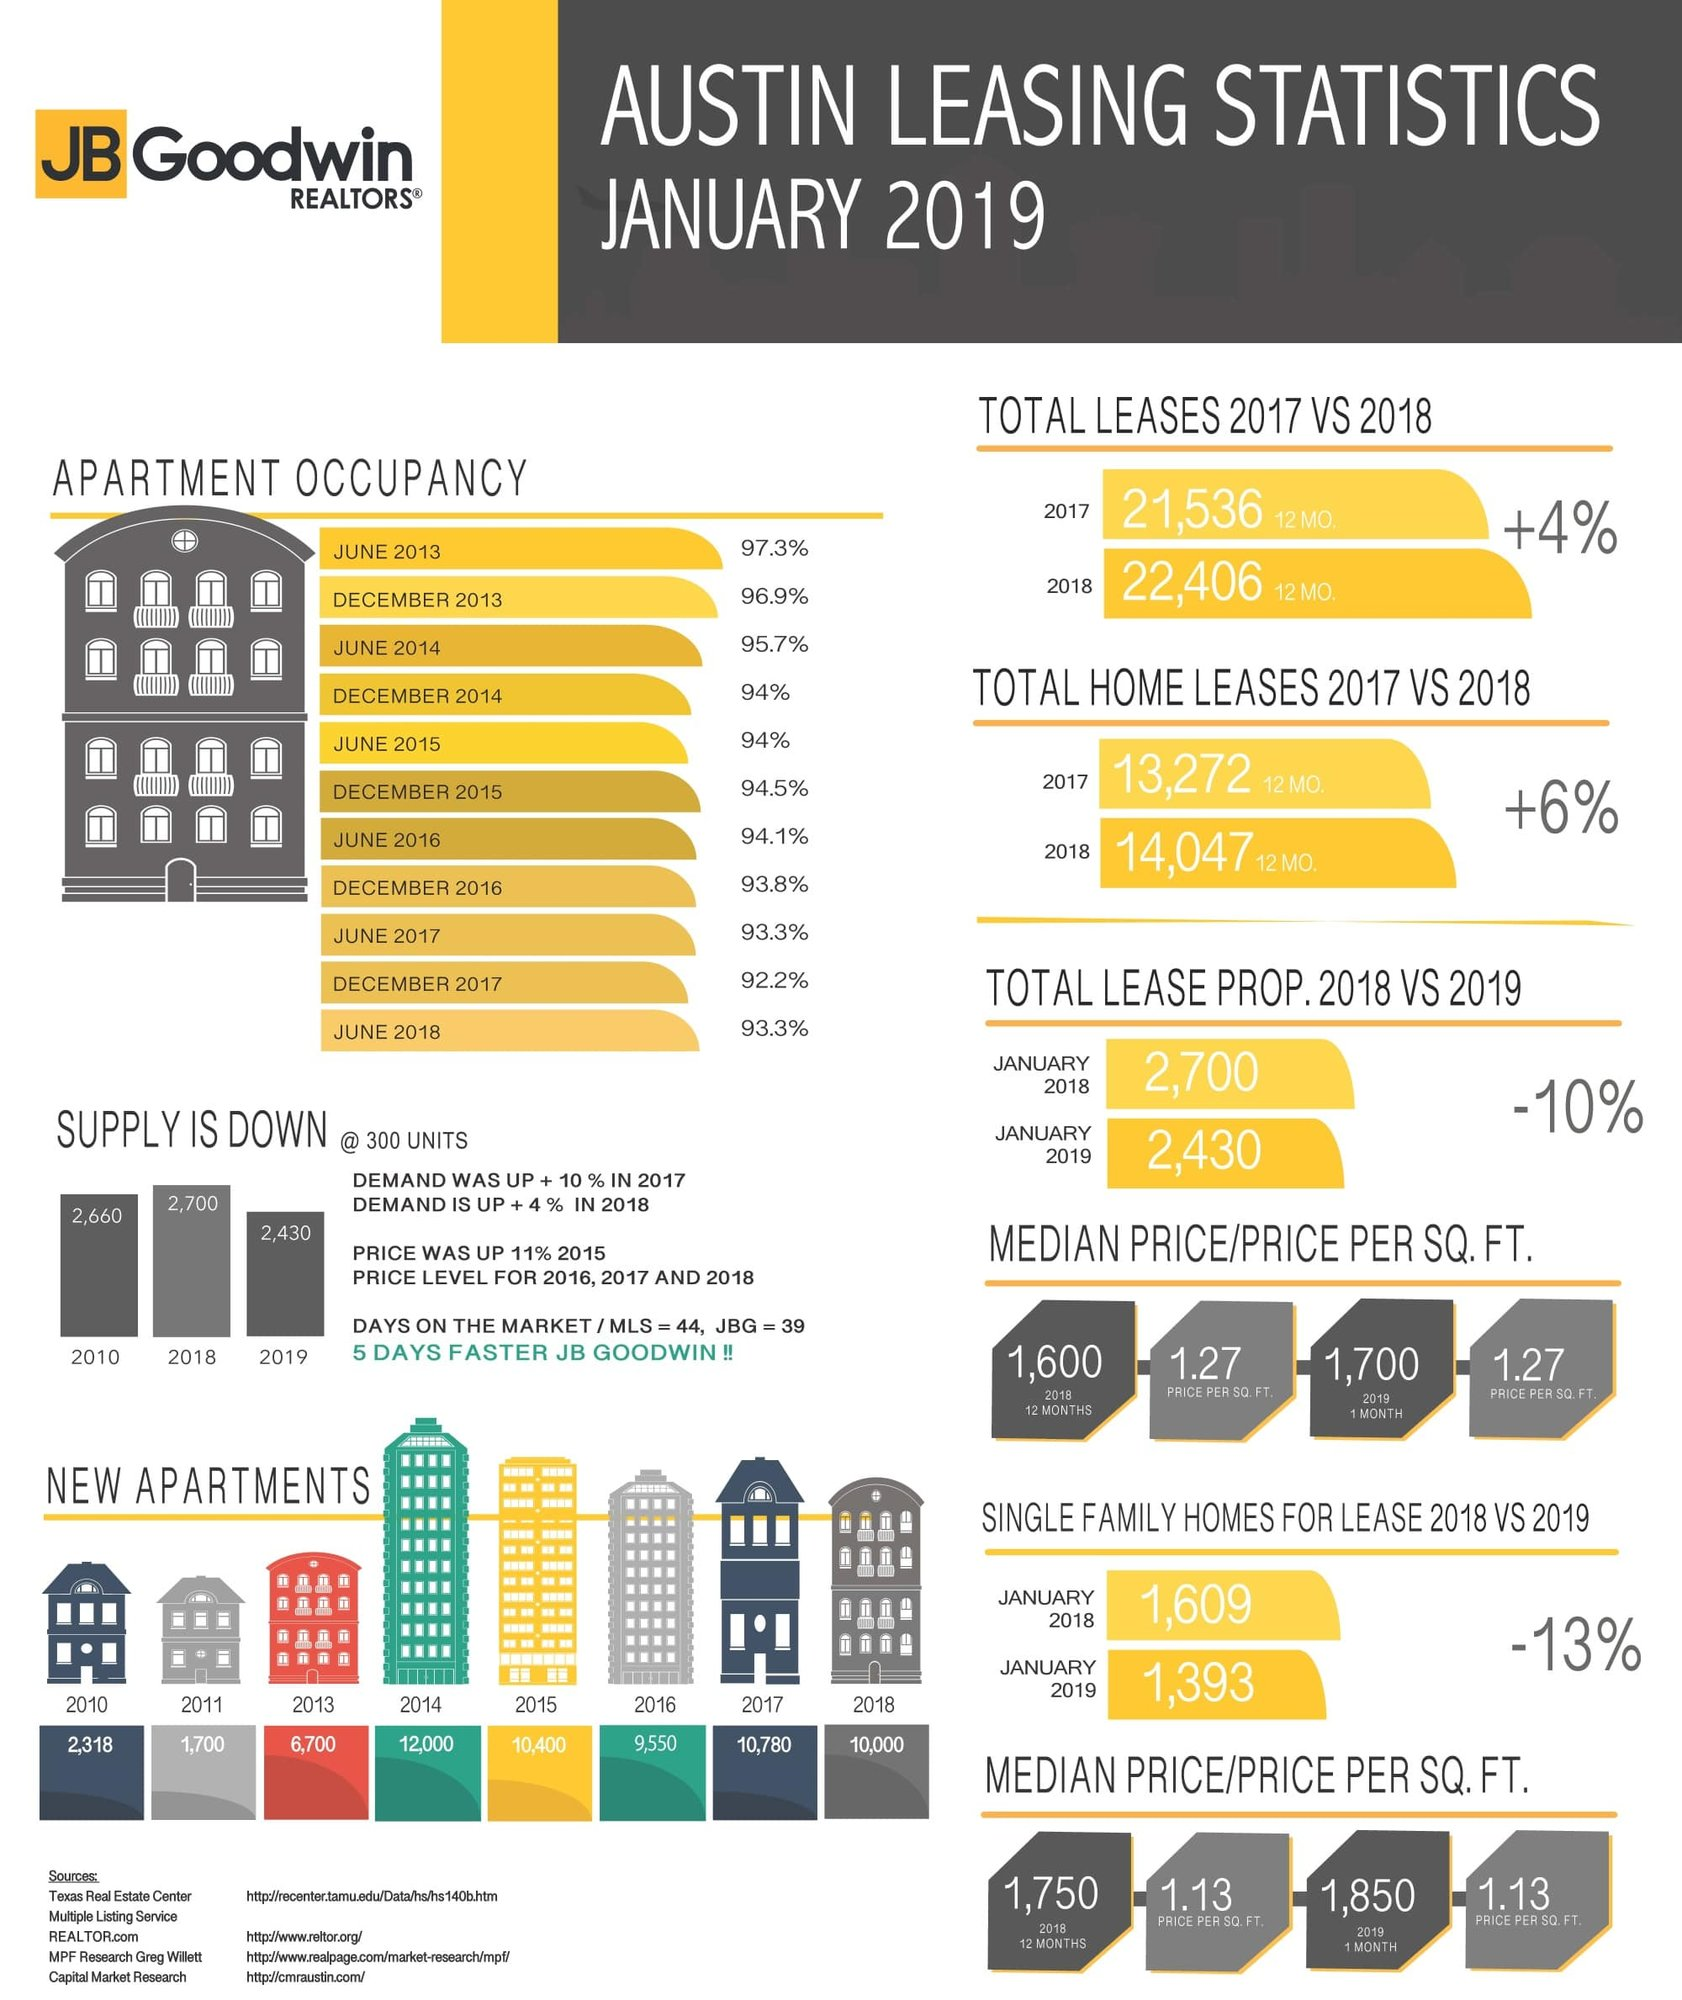 austin mls leasing stats - January 2019